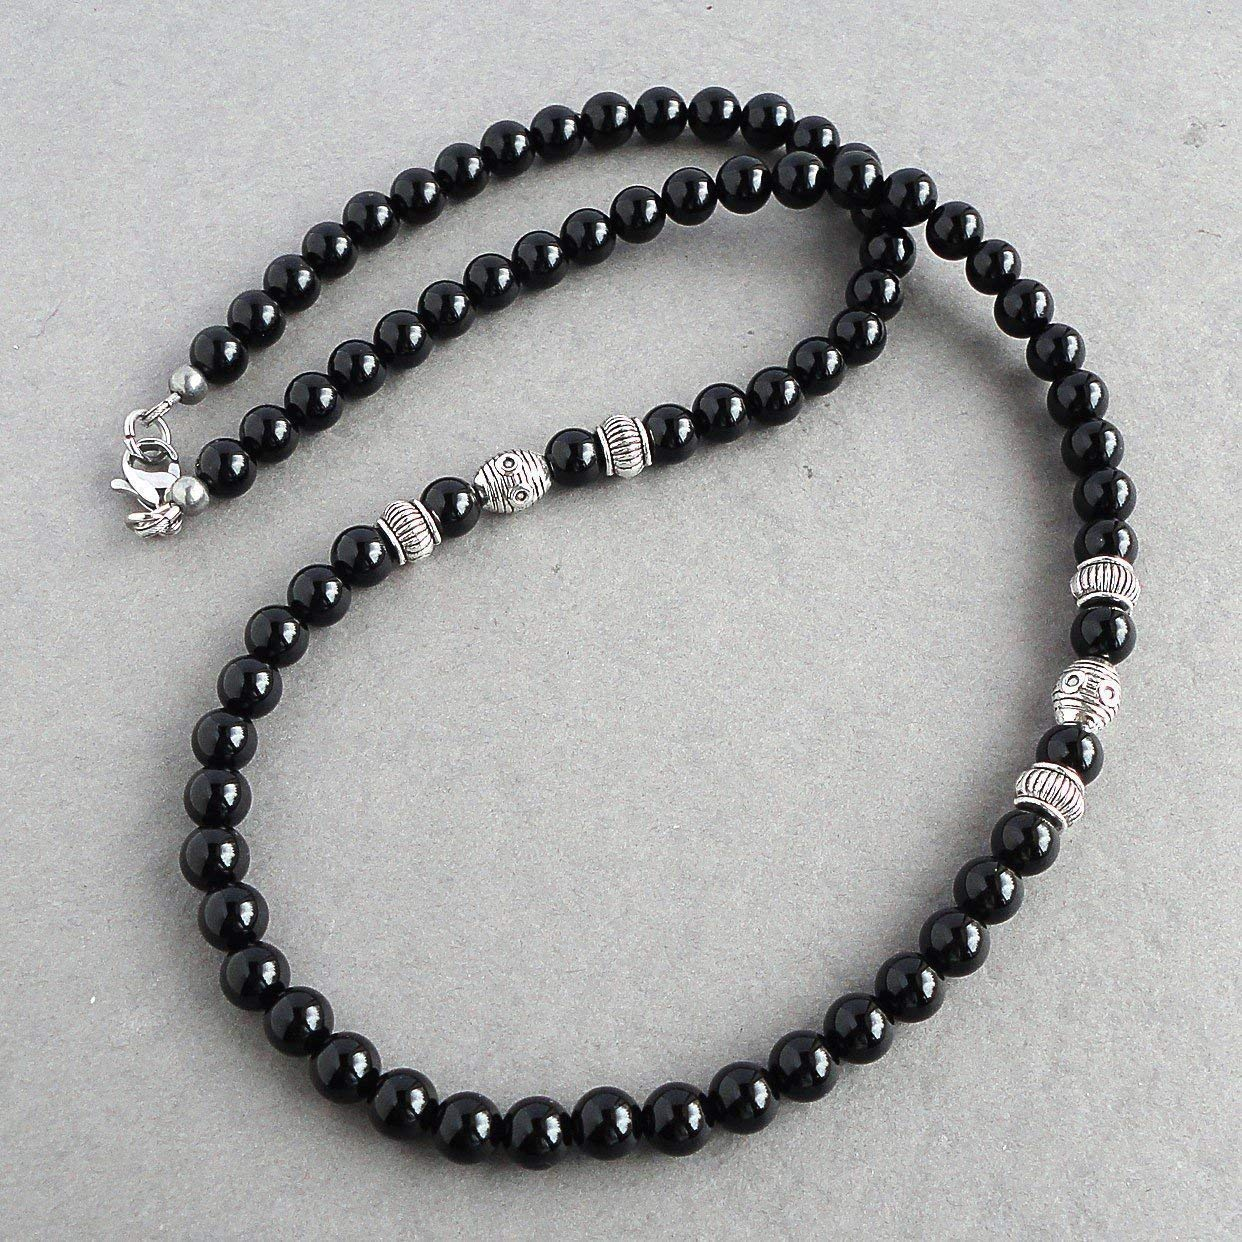 Mens 6mm Black Onyx Necklace 18, 20, 22 inch High Quality Gemstone Jewelry - Handcrafted in USA